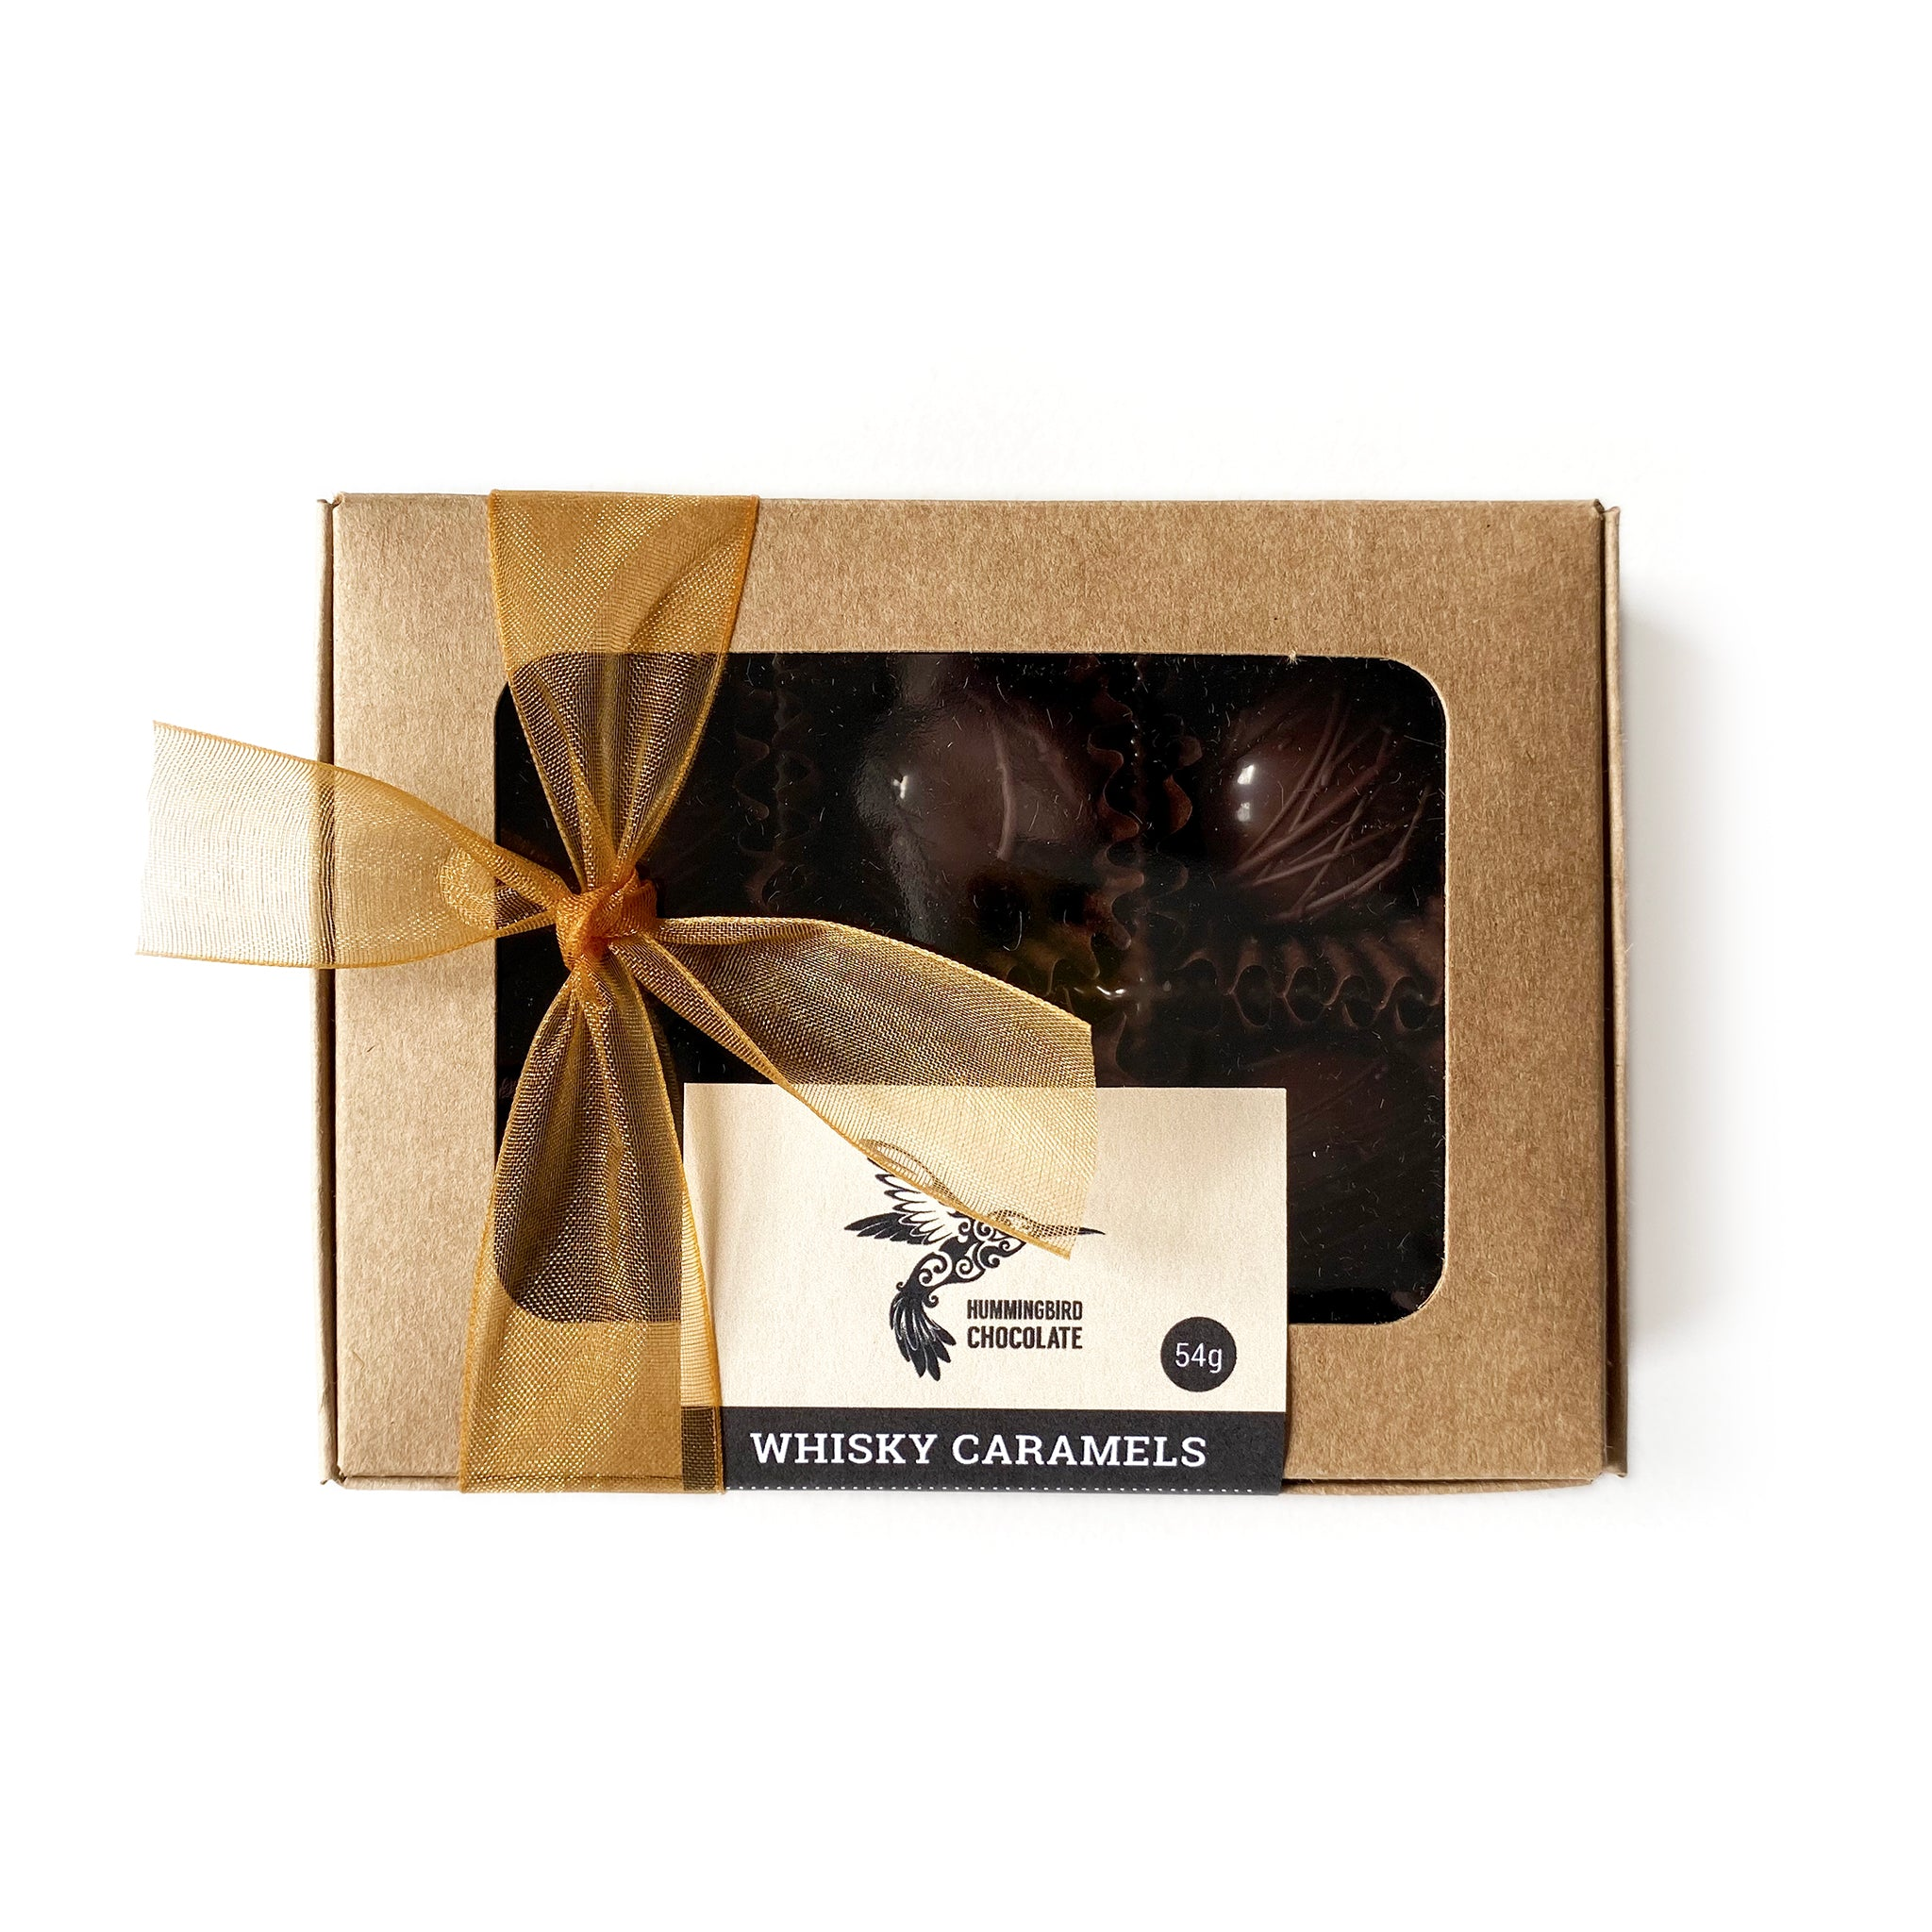 Hummingbird Chocolate, Box of 6 Whisky caramels, wrapped in a kraft box and bow.